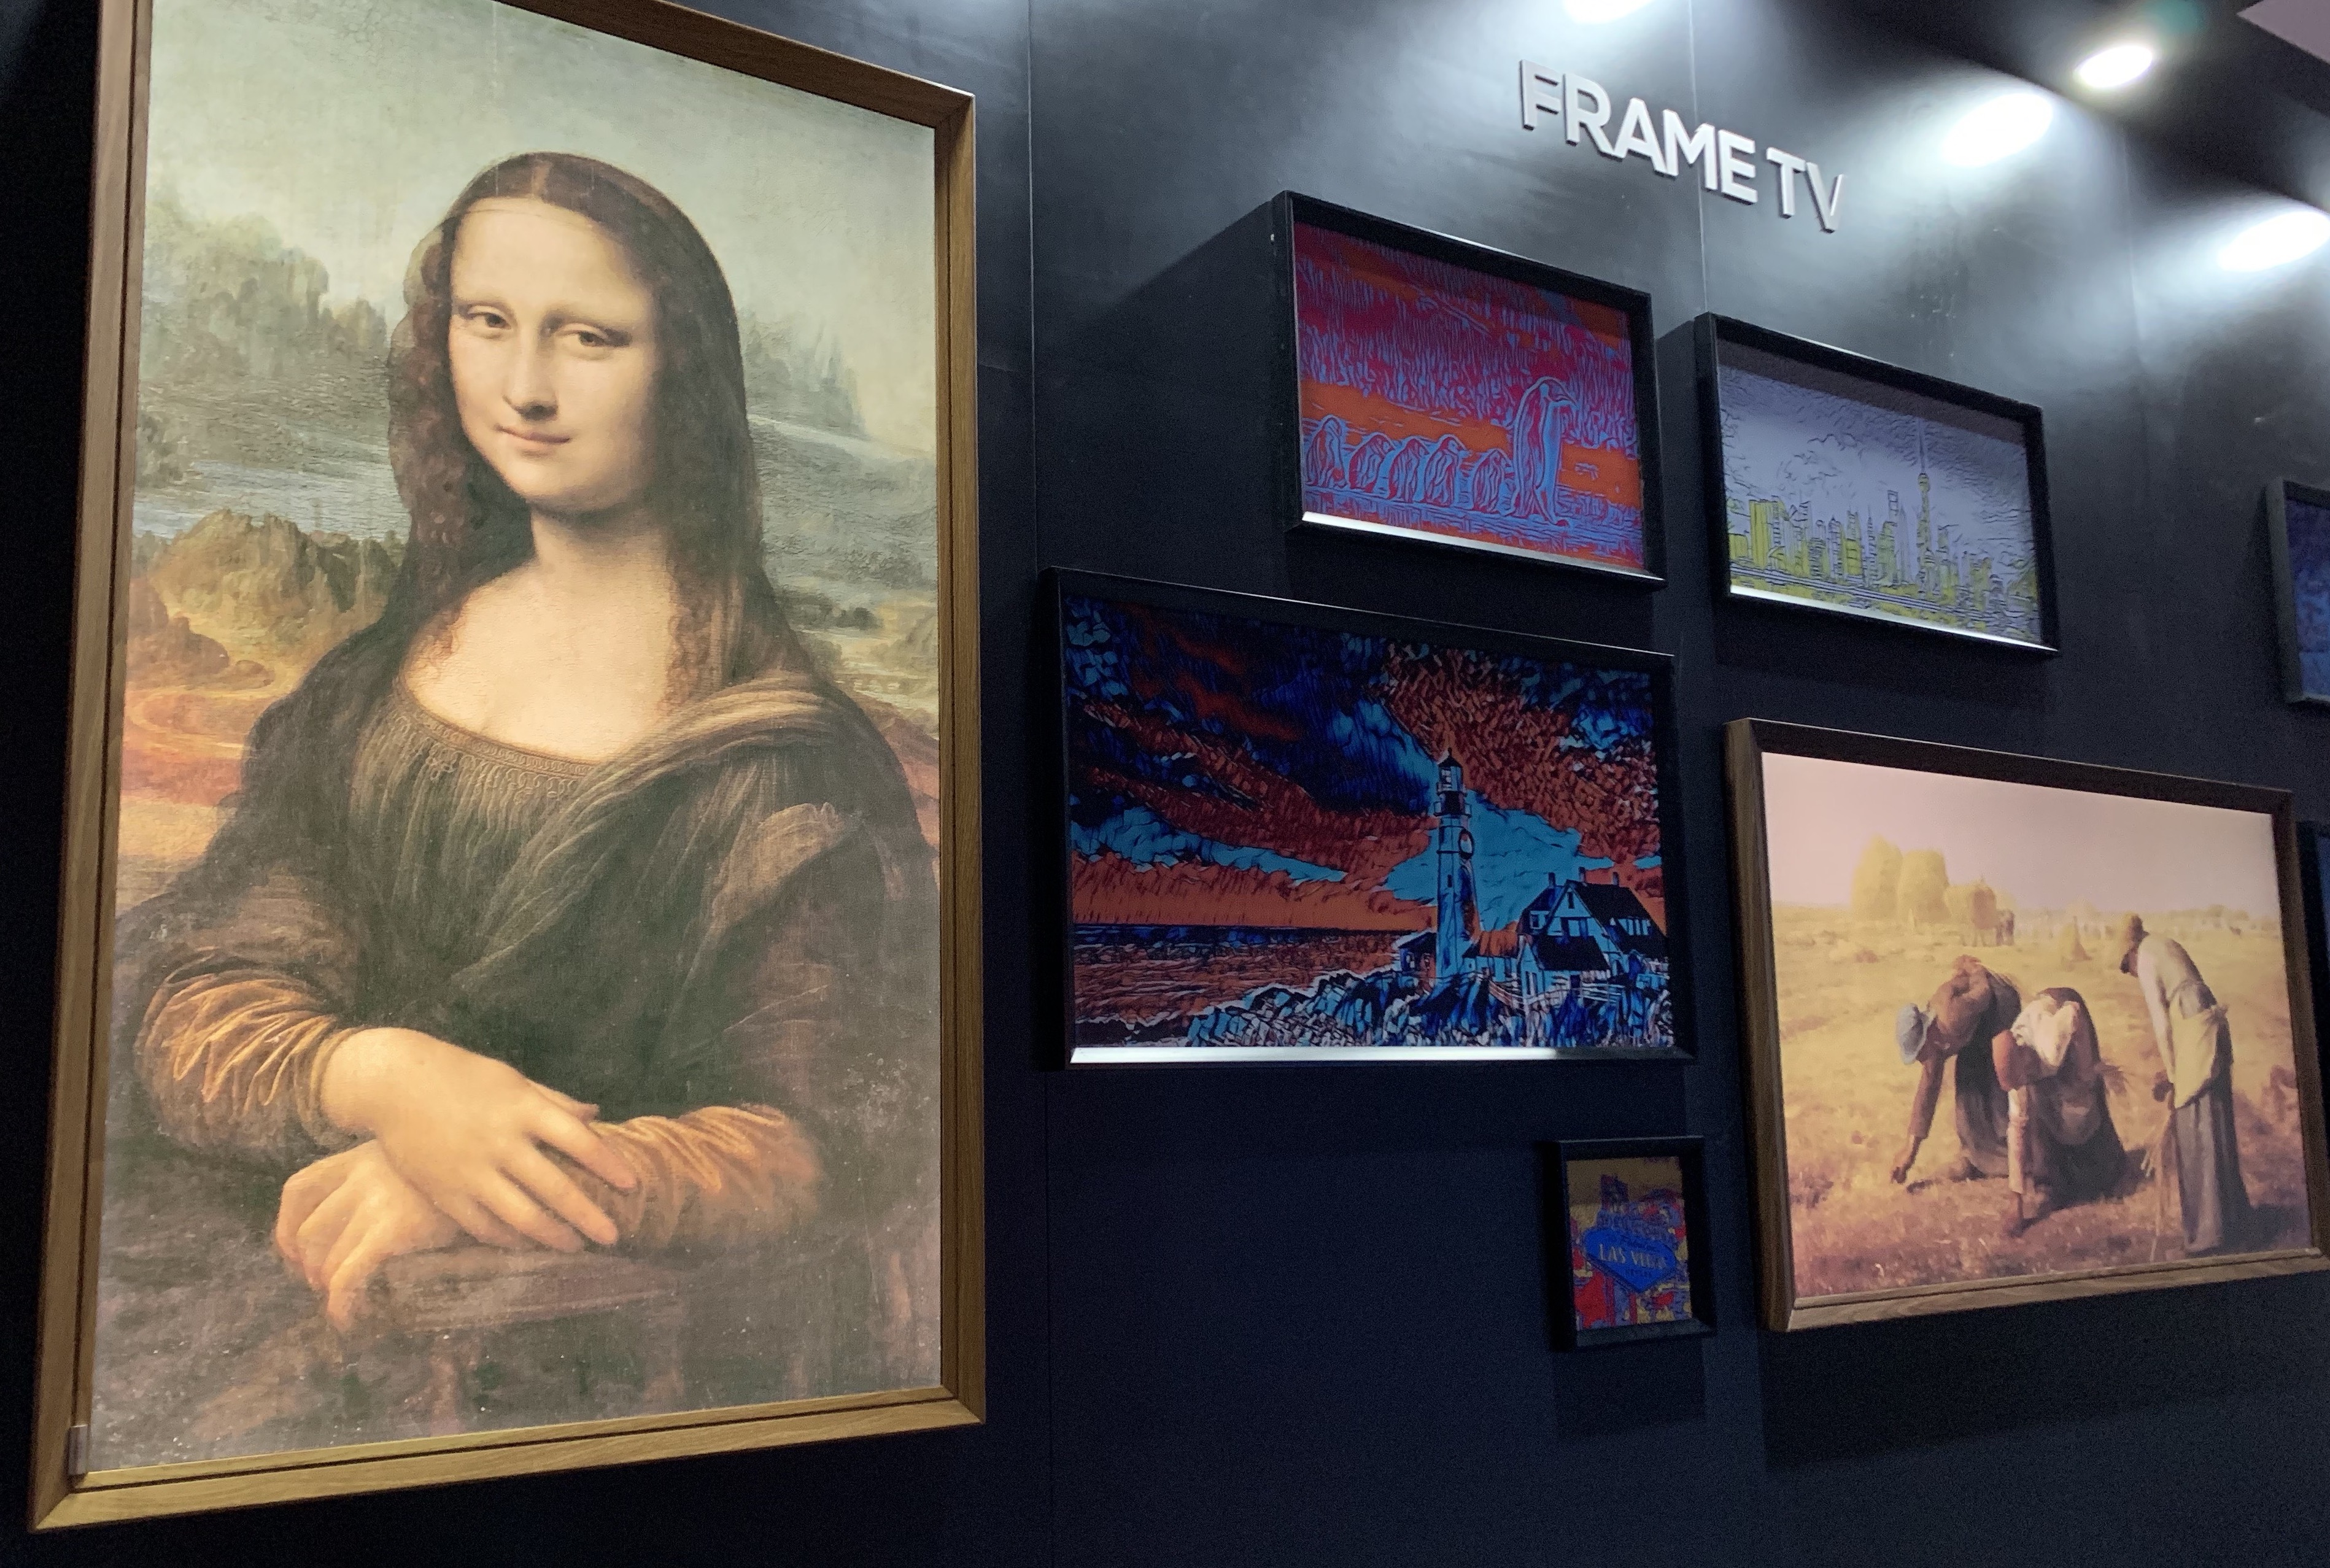 Frame Art TVs From CES